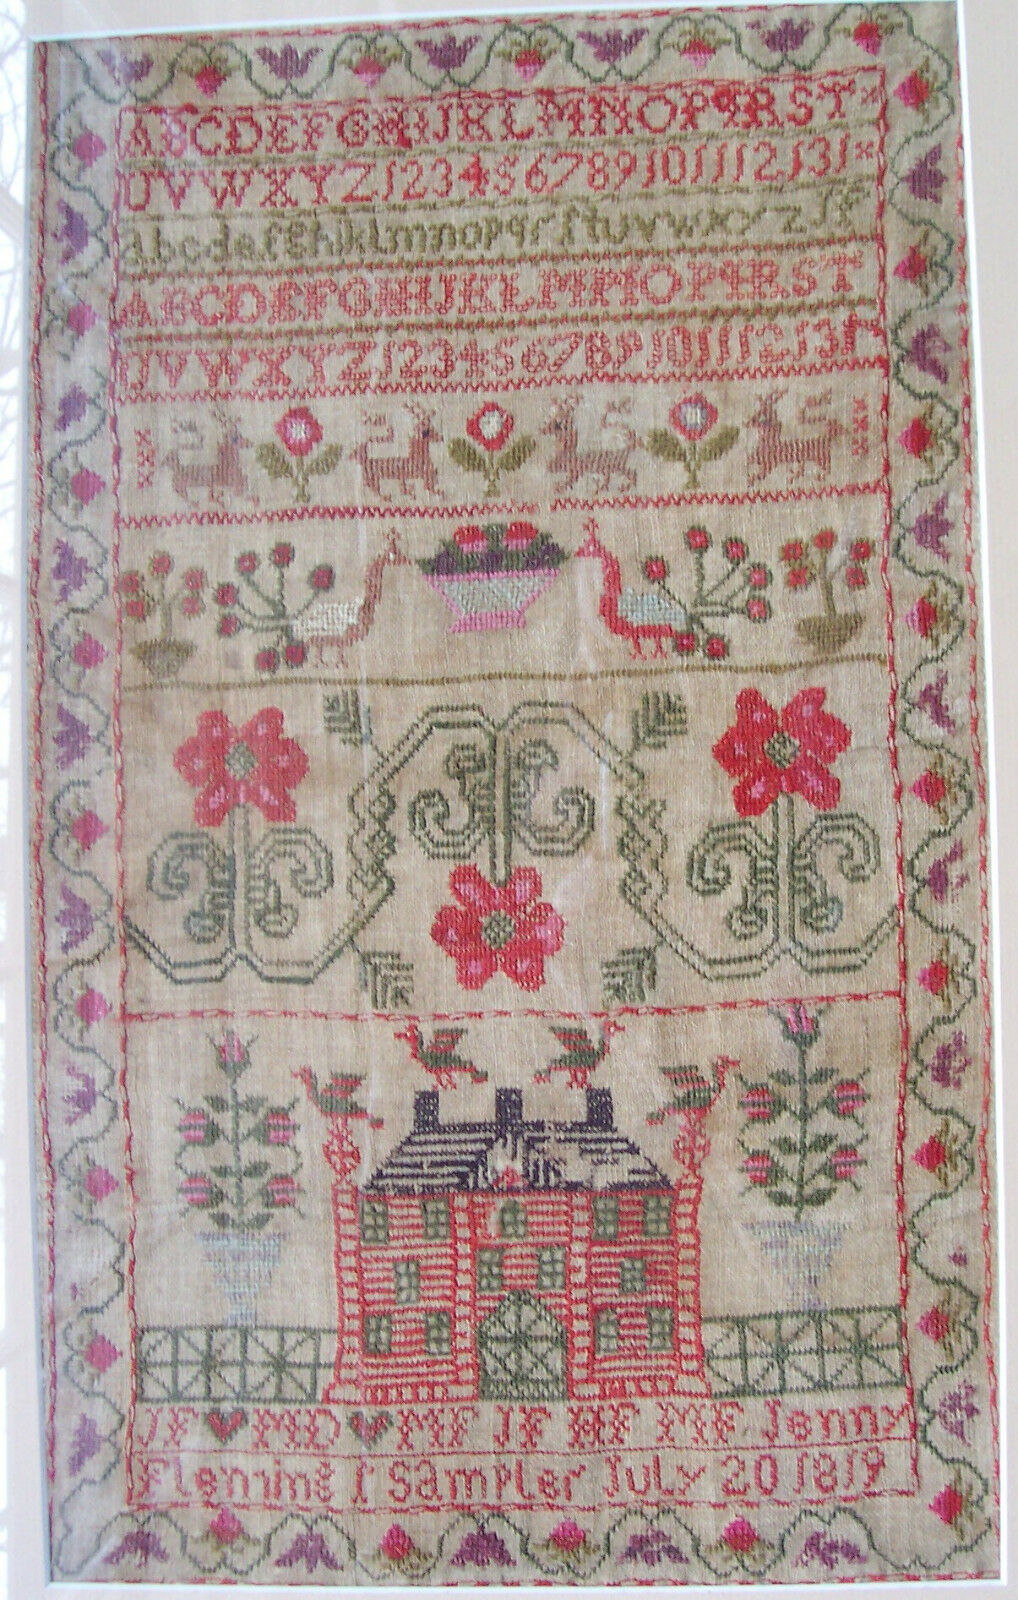 Early Pictorial Sampler Jenny Fleming 1819 Antique w Alphabet House Roses Lions